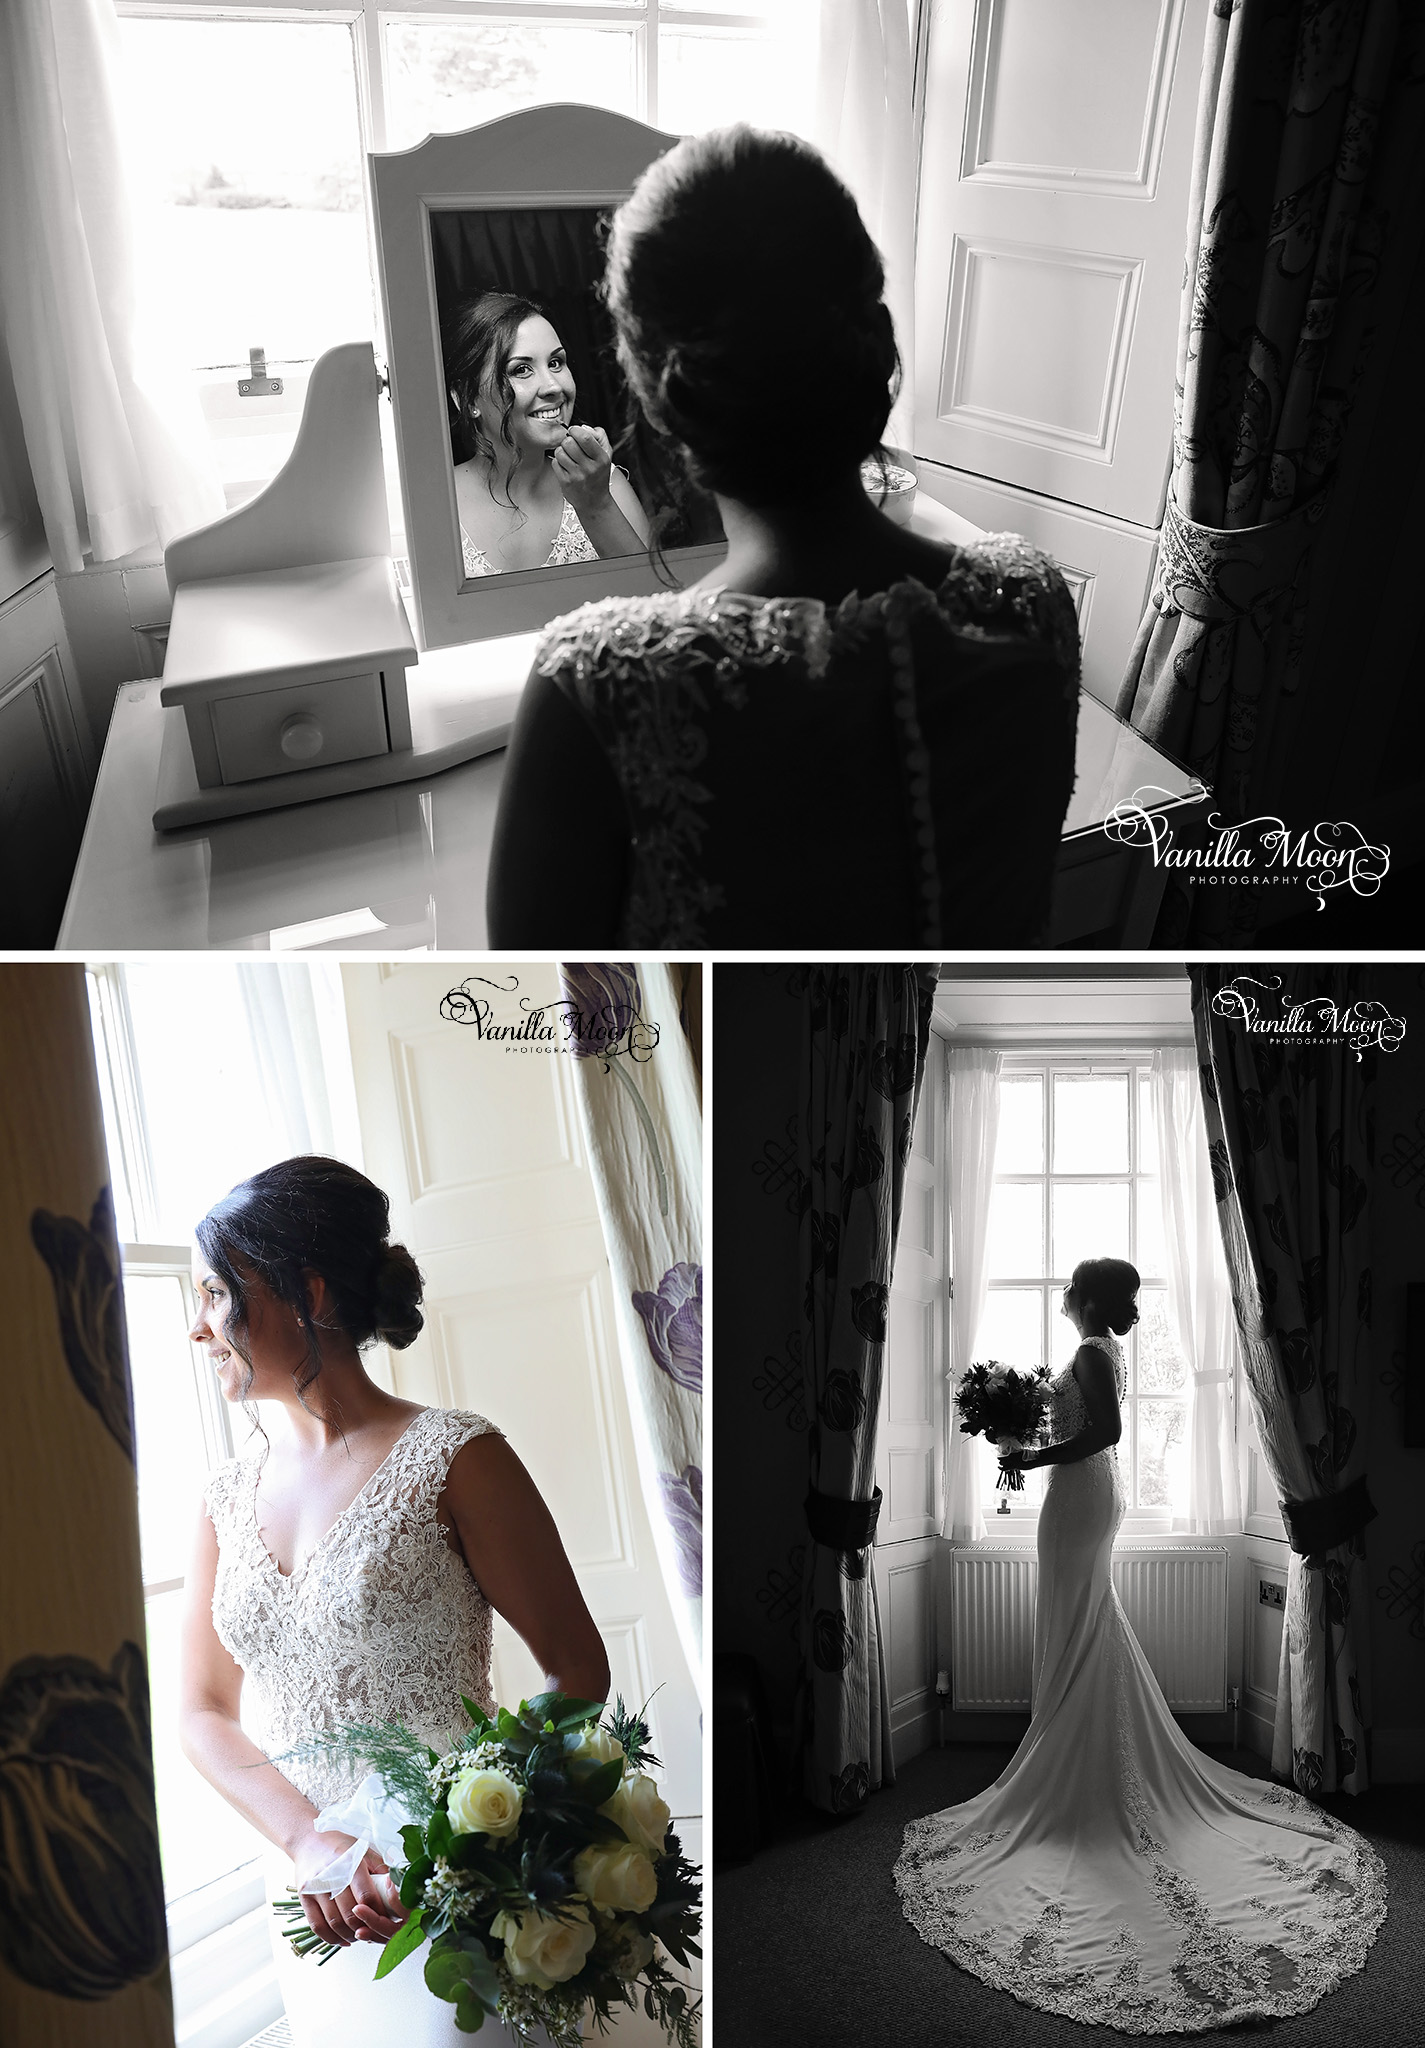 Natural wedding photography Scottish Borders Scotland